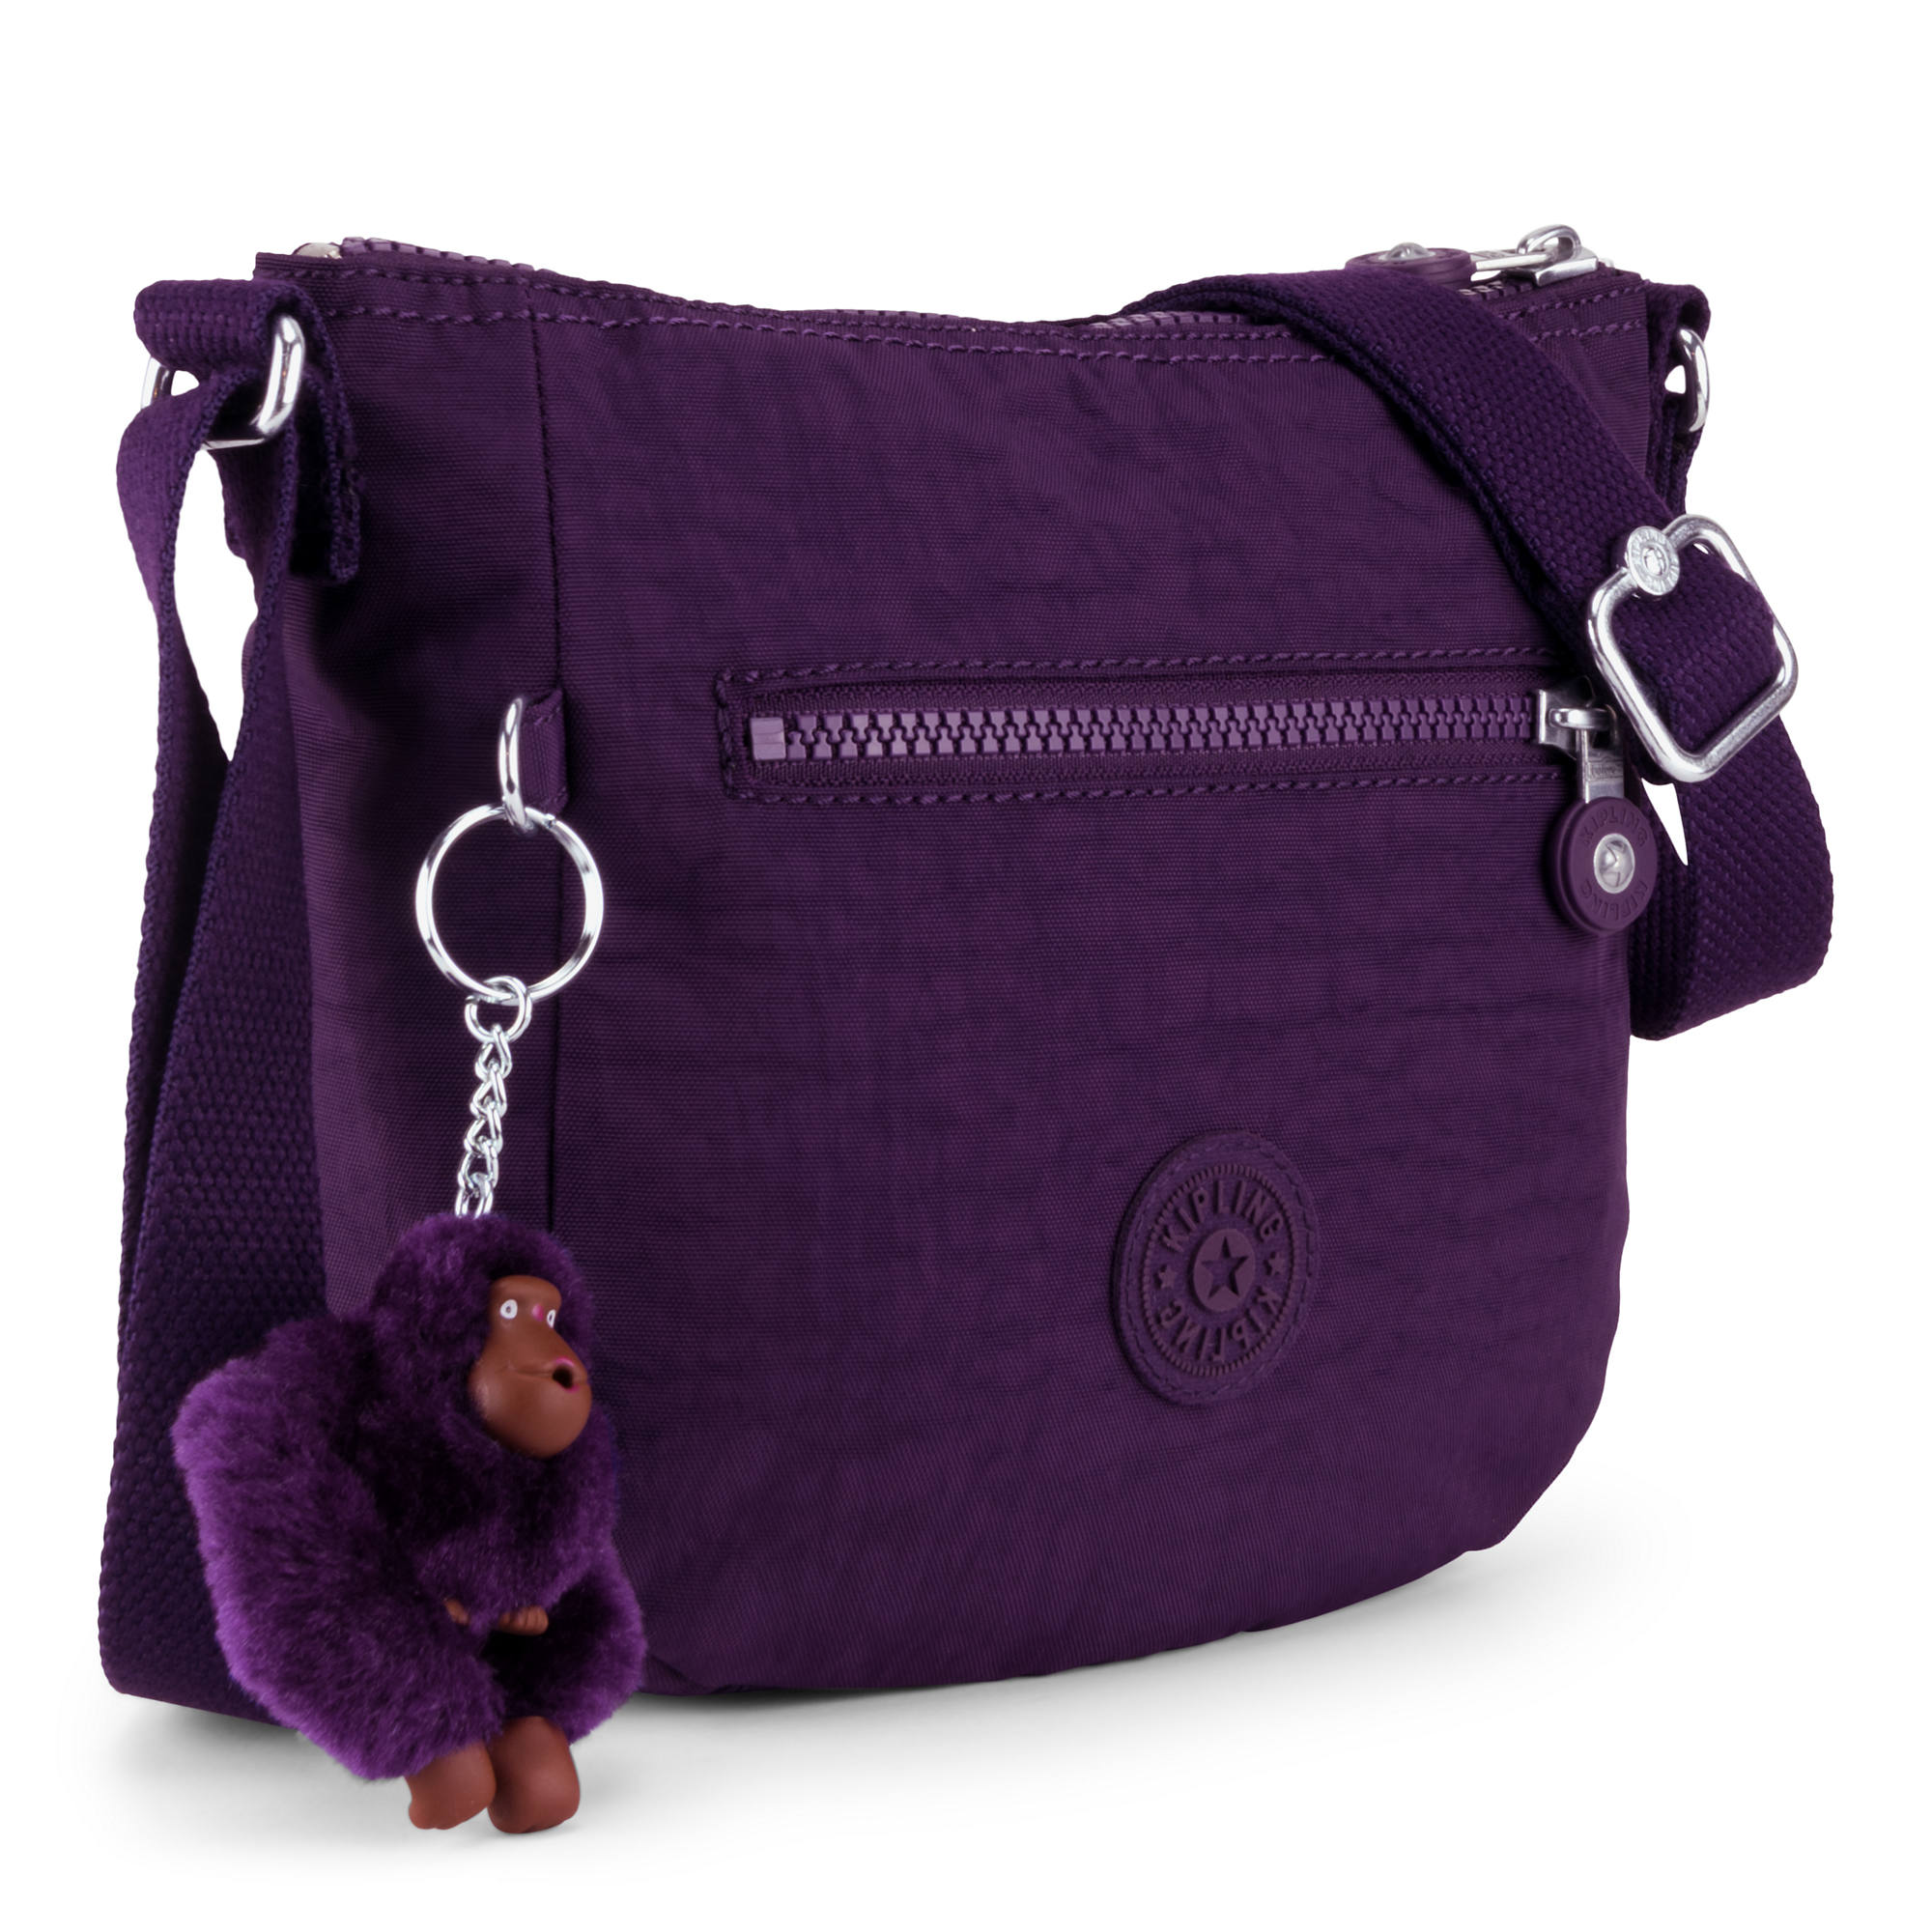 2d4eef3554f Bailey Extra Small Mini Bag,Deep Purple,large